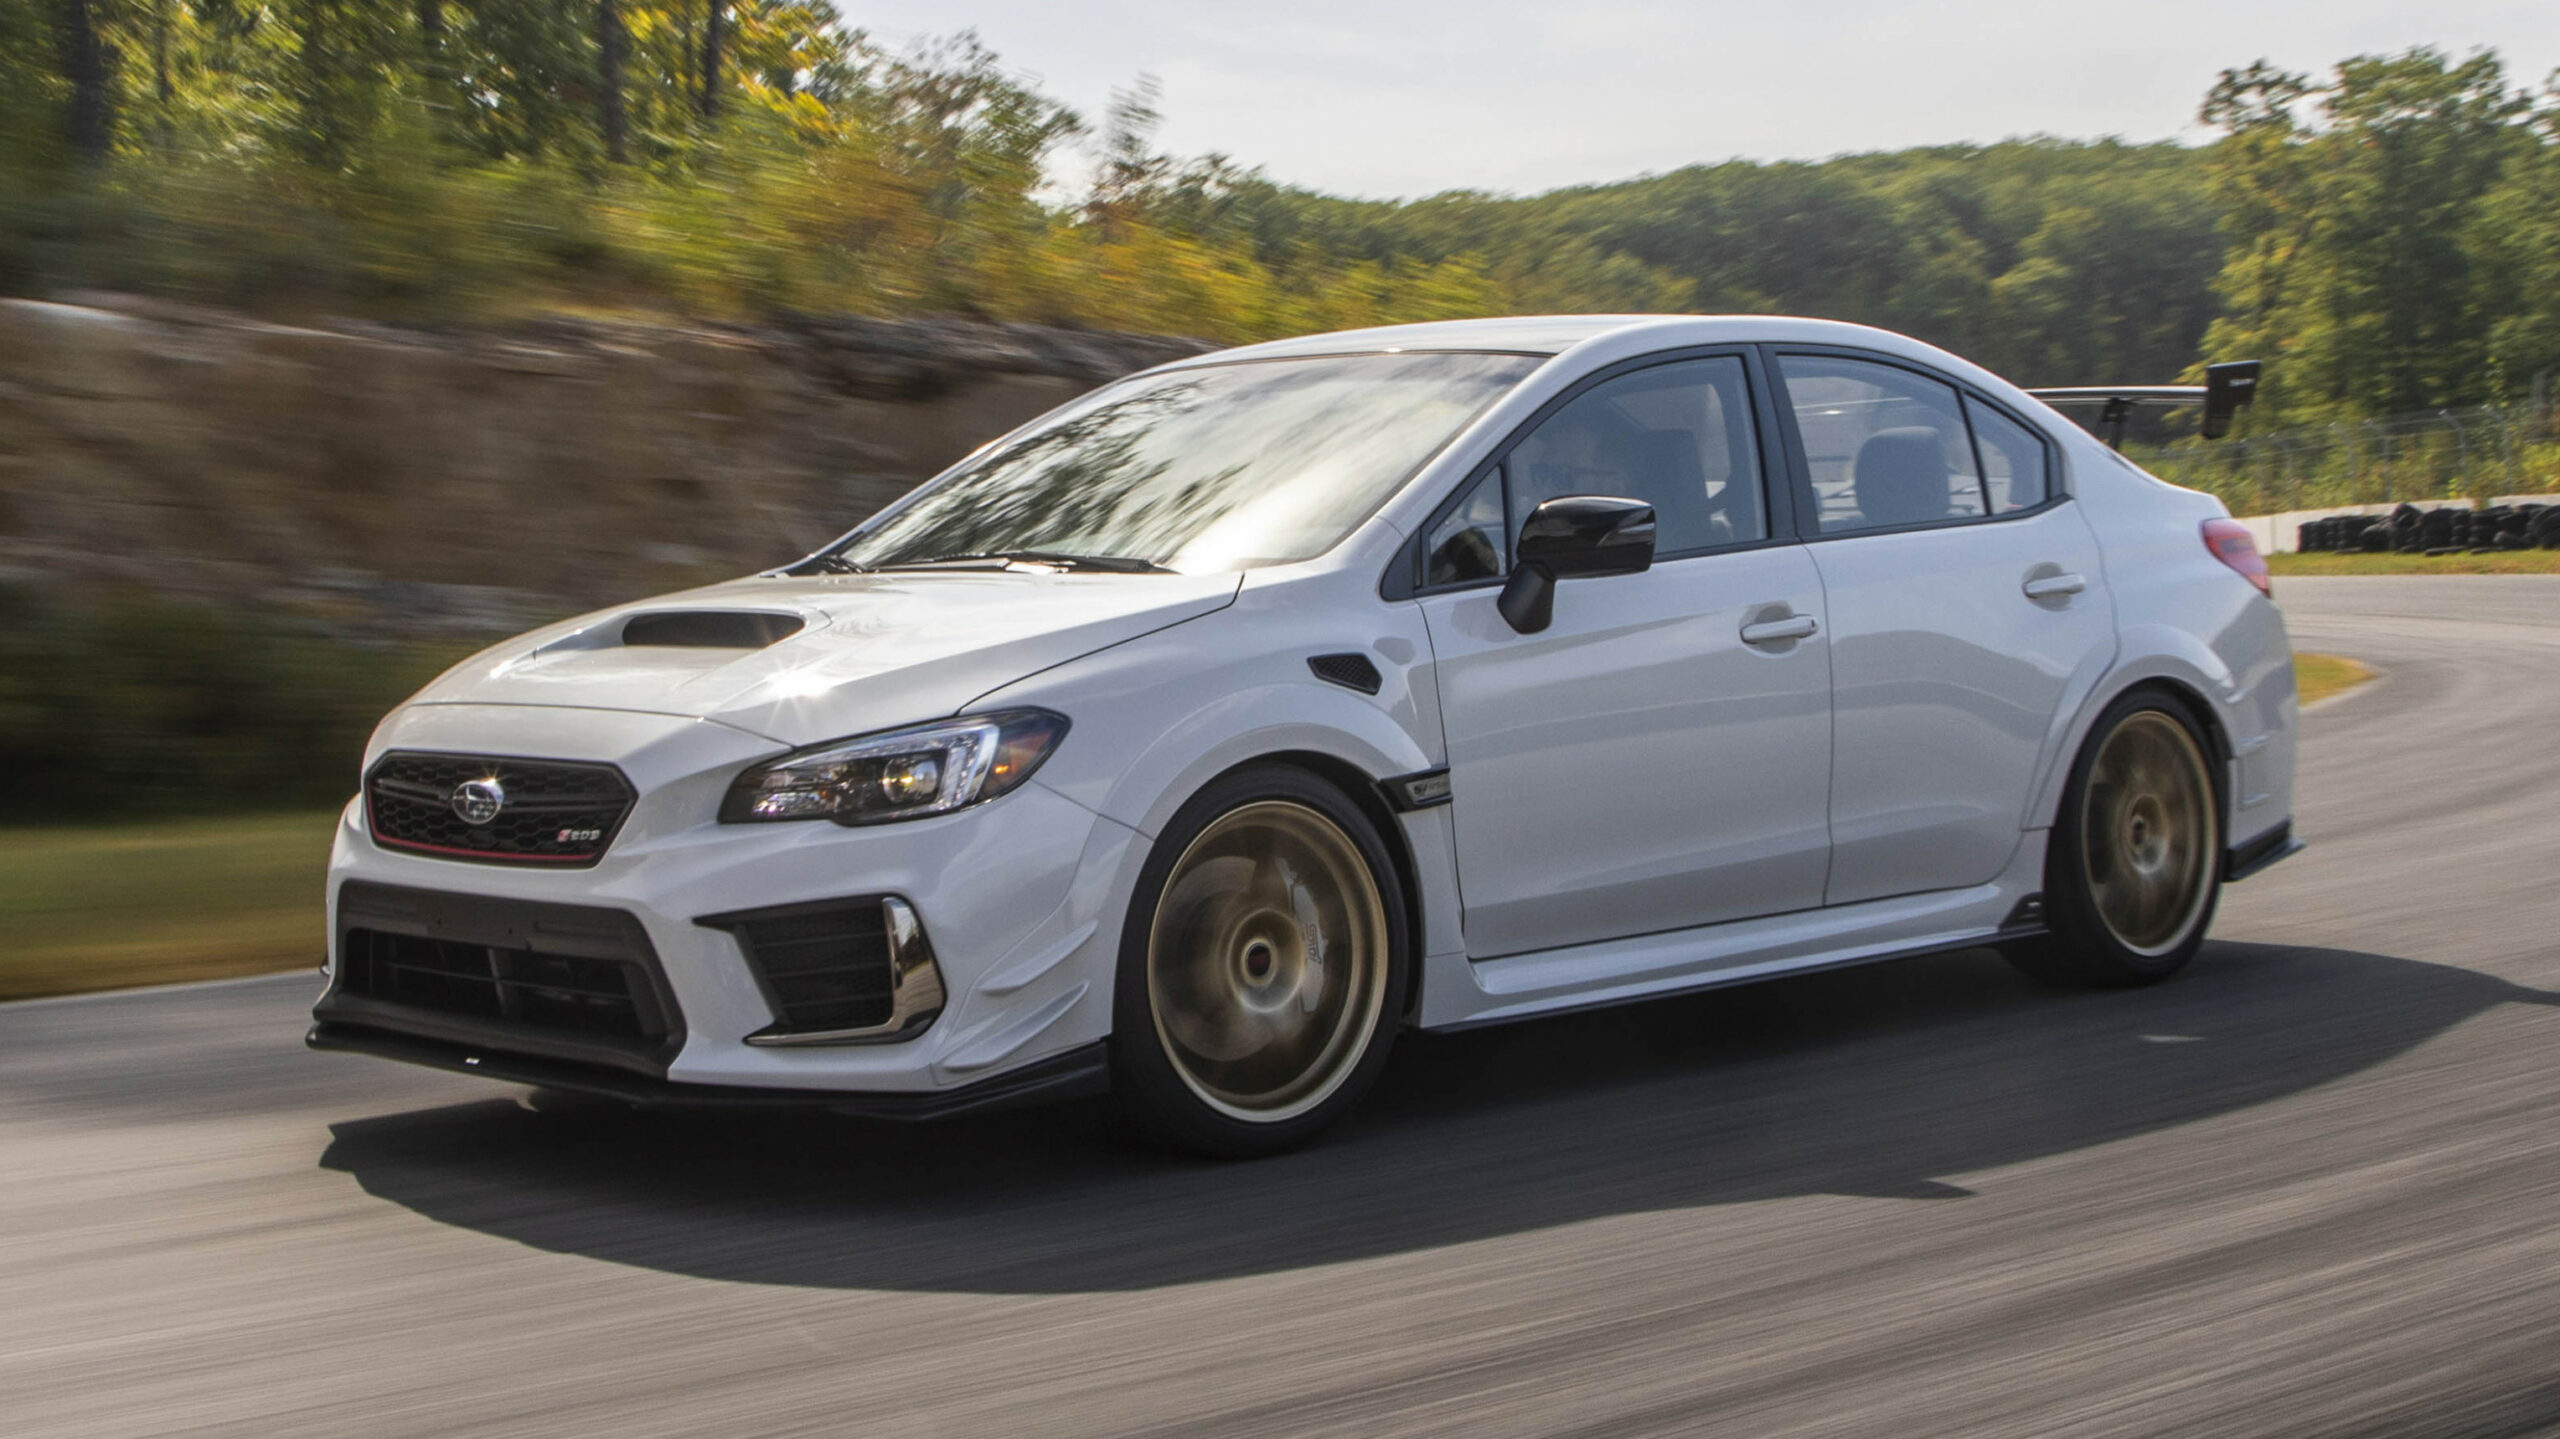 11 Subaru STI S11 Review   What is it, how it drives, how fast ..